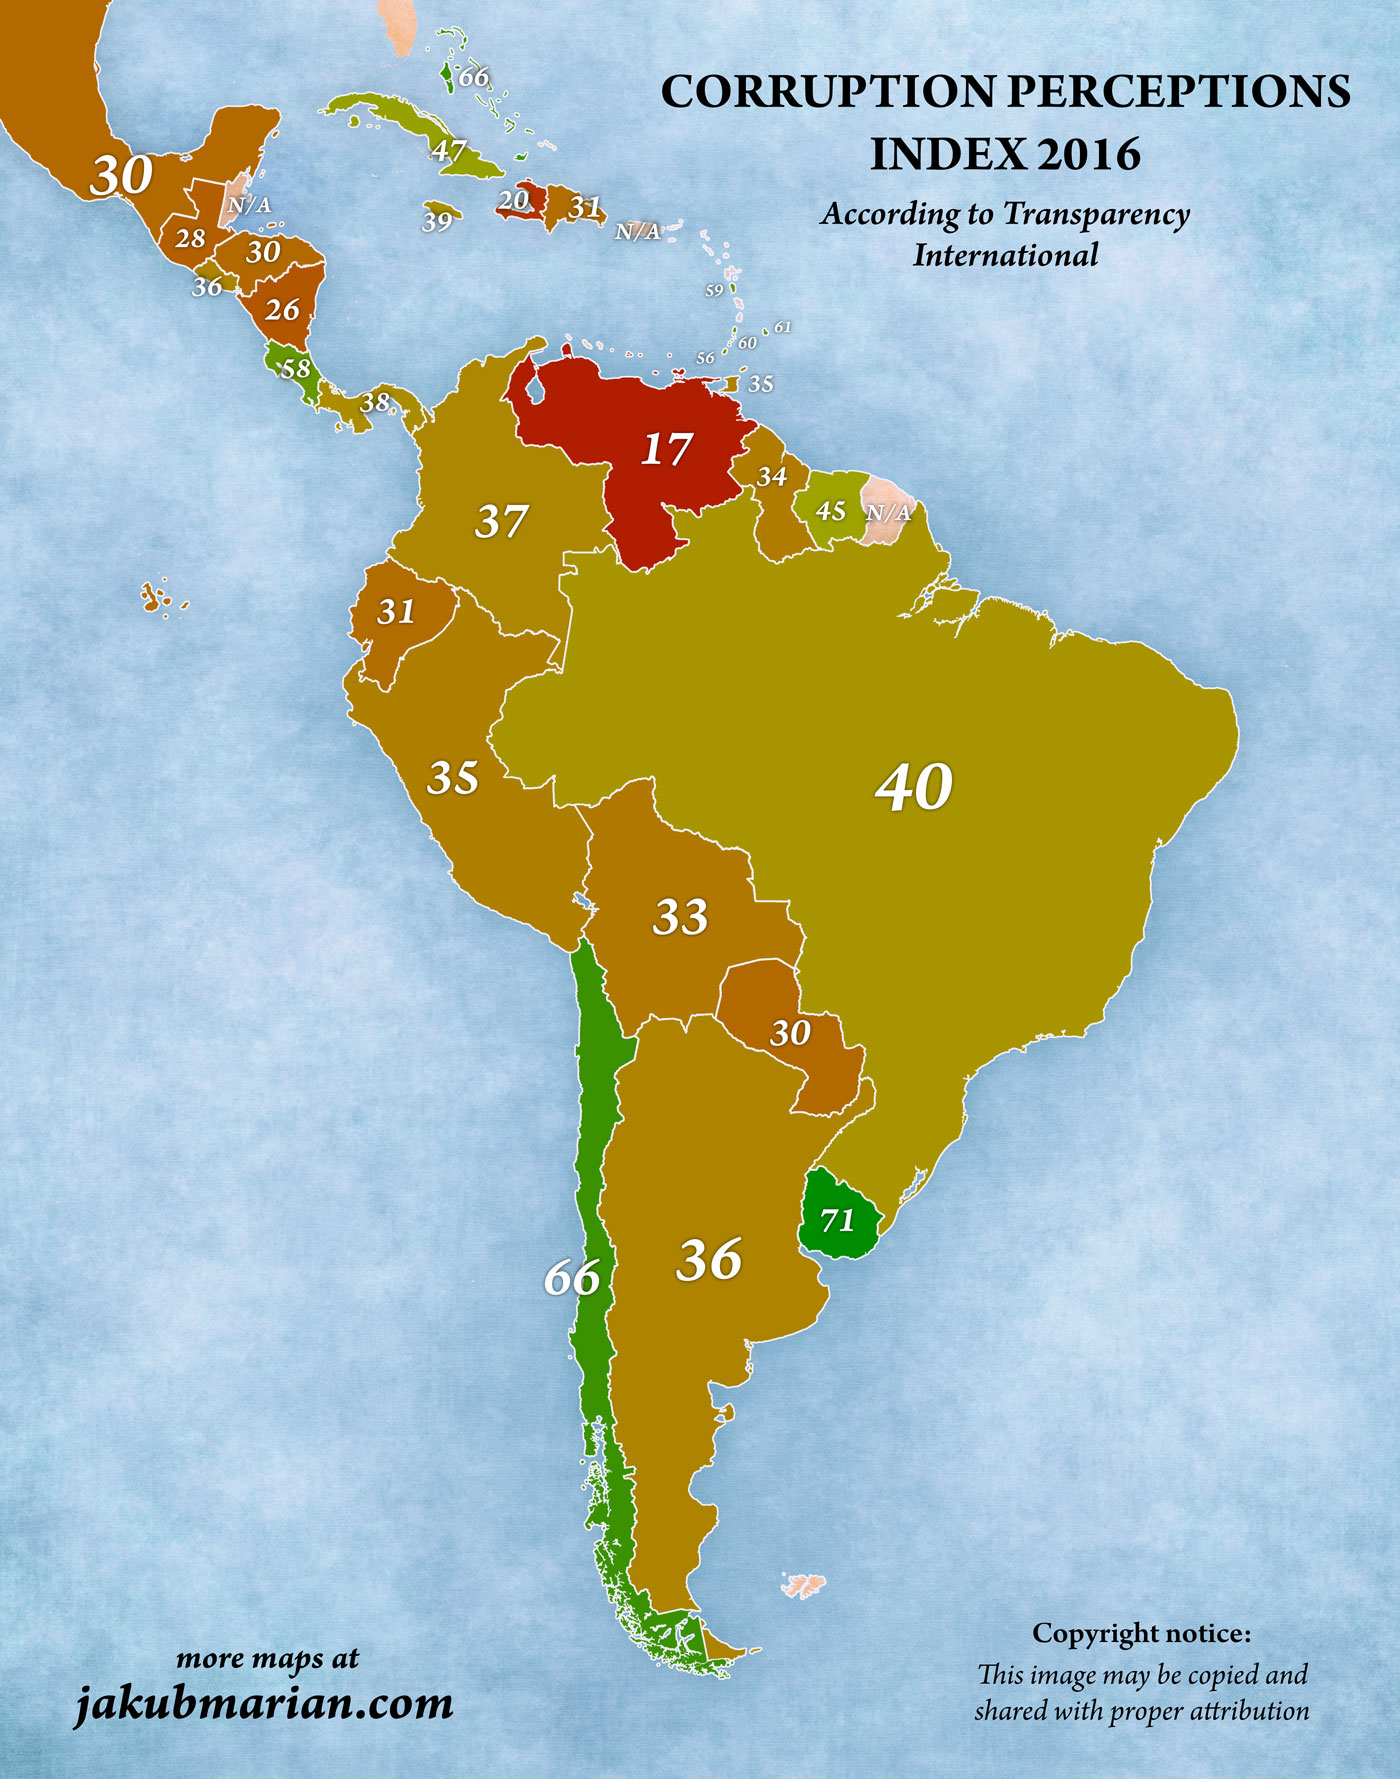 corruption perceptions index in south and central america